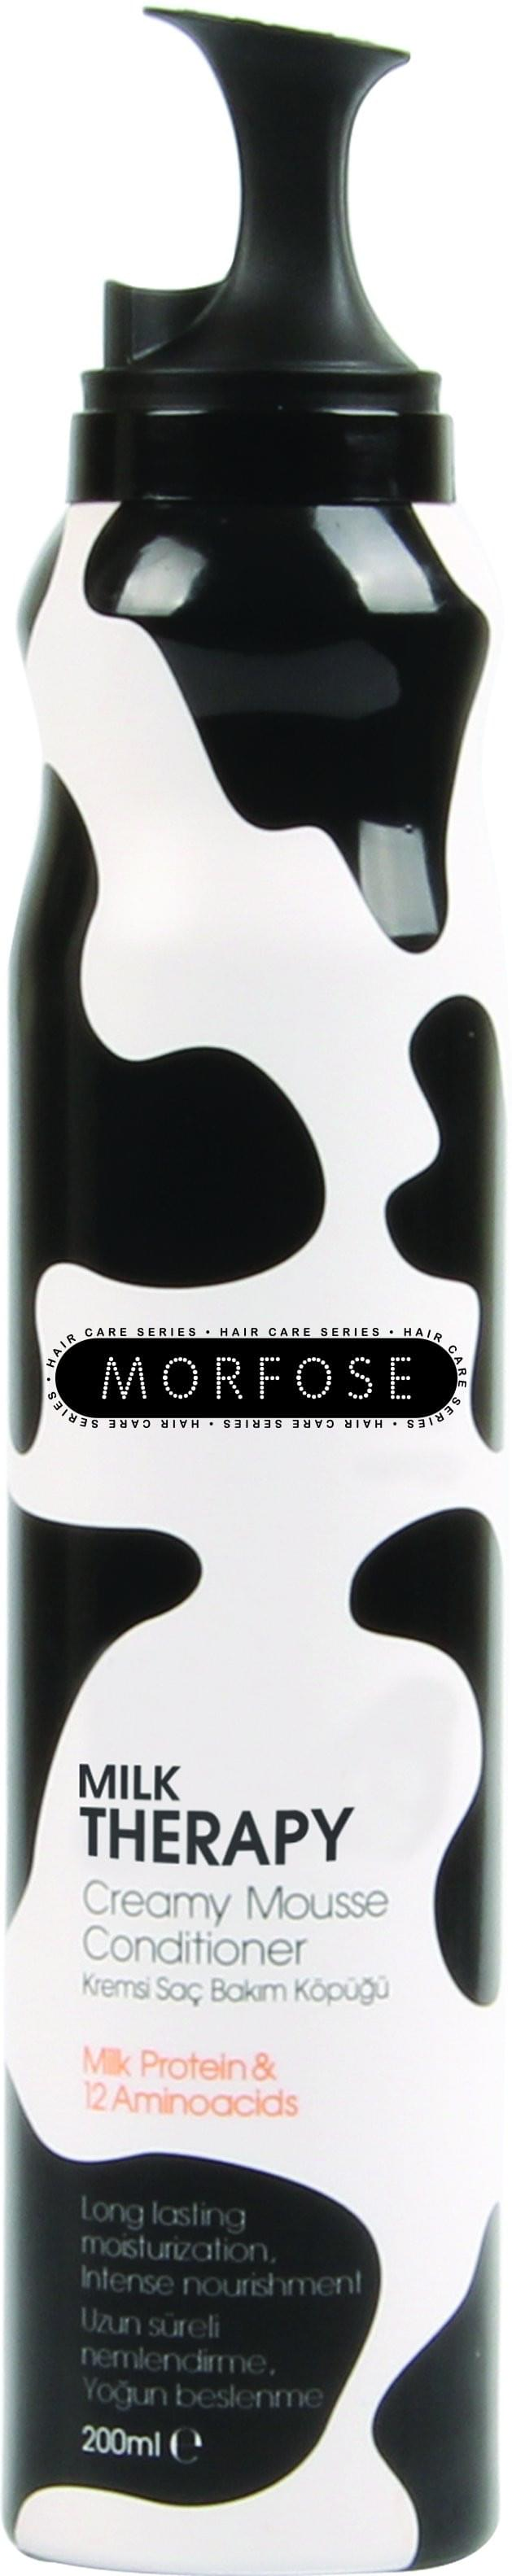 Morfose Creamy Mousse Conditioner 200ml - MorfoseUK